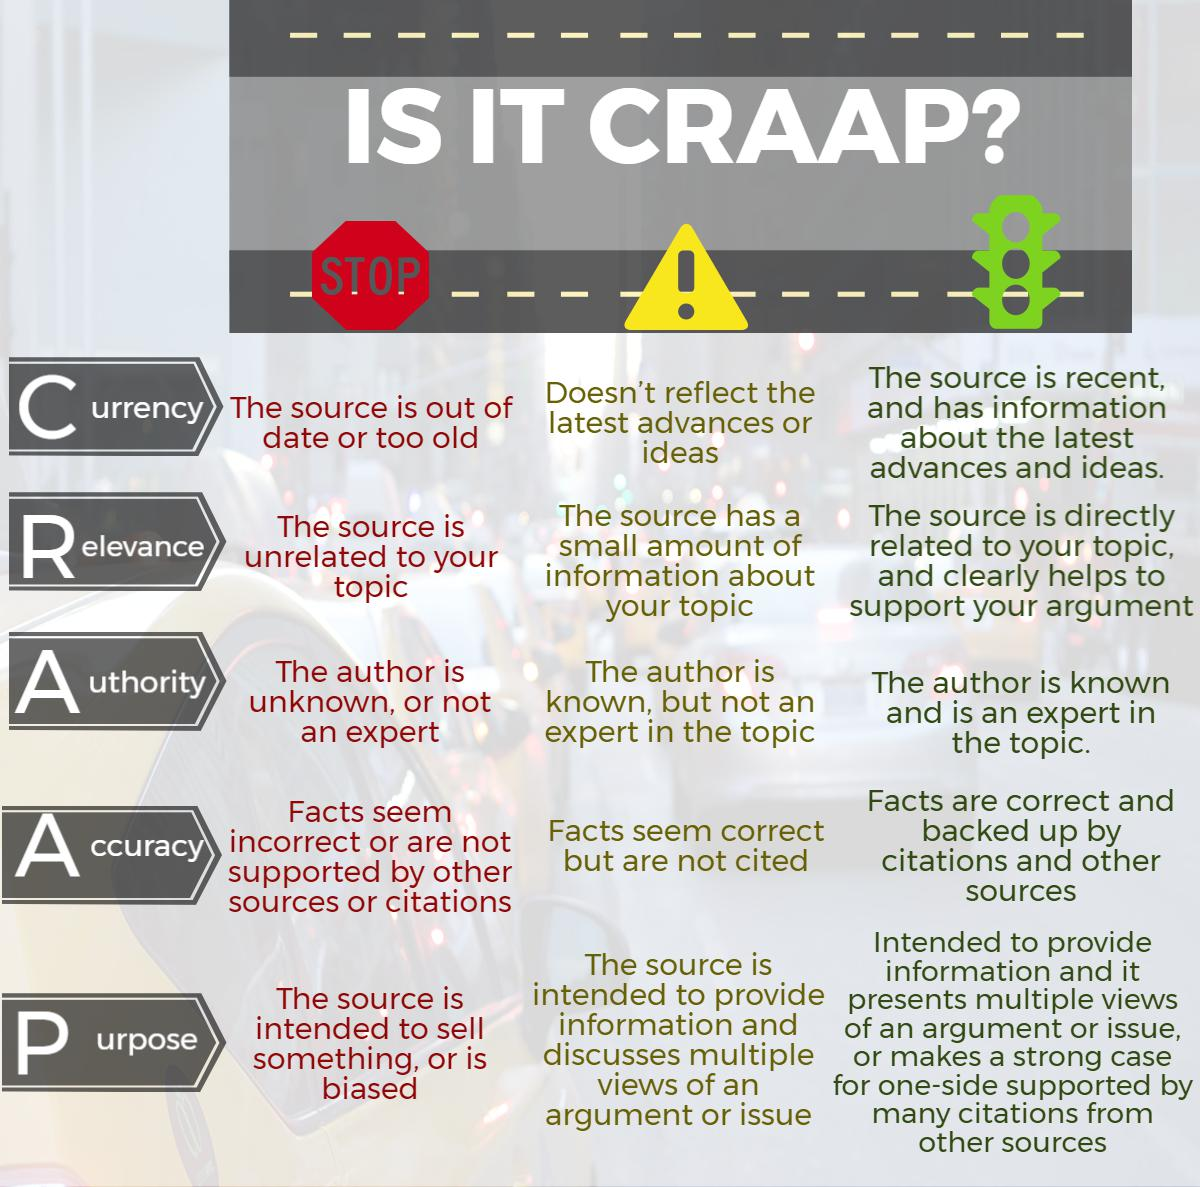 chart describing the CRAAP test as a method to evaluate sources of information